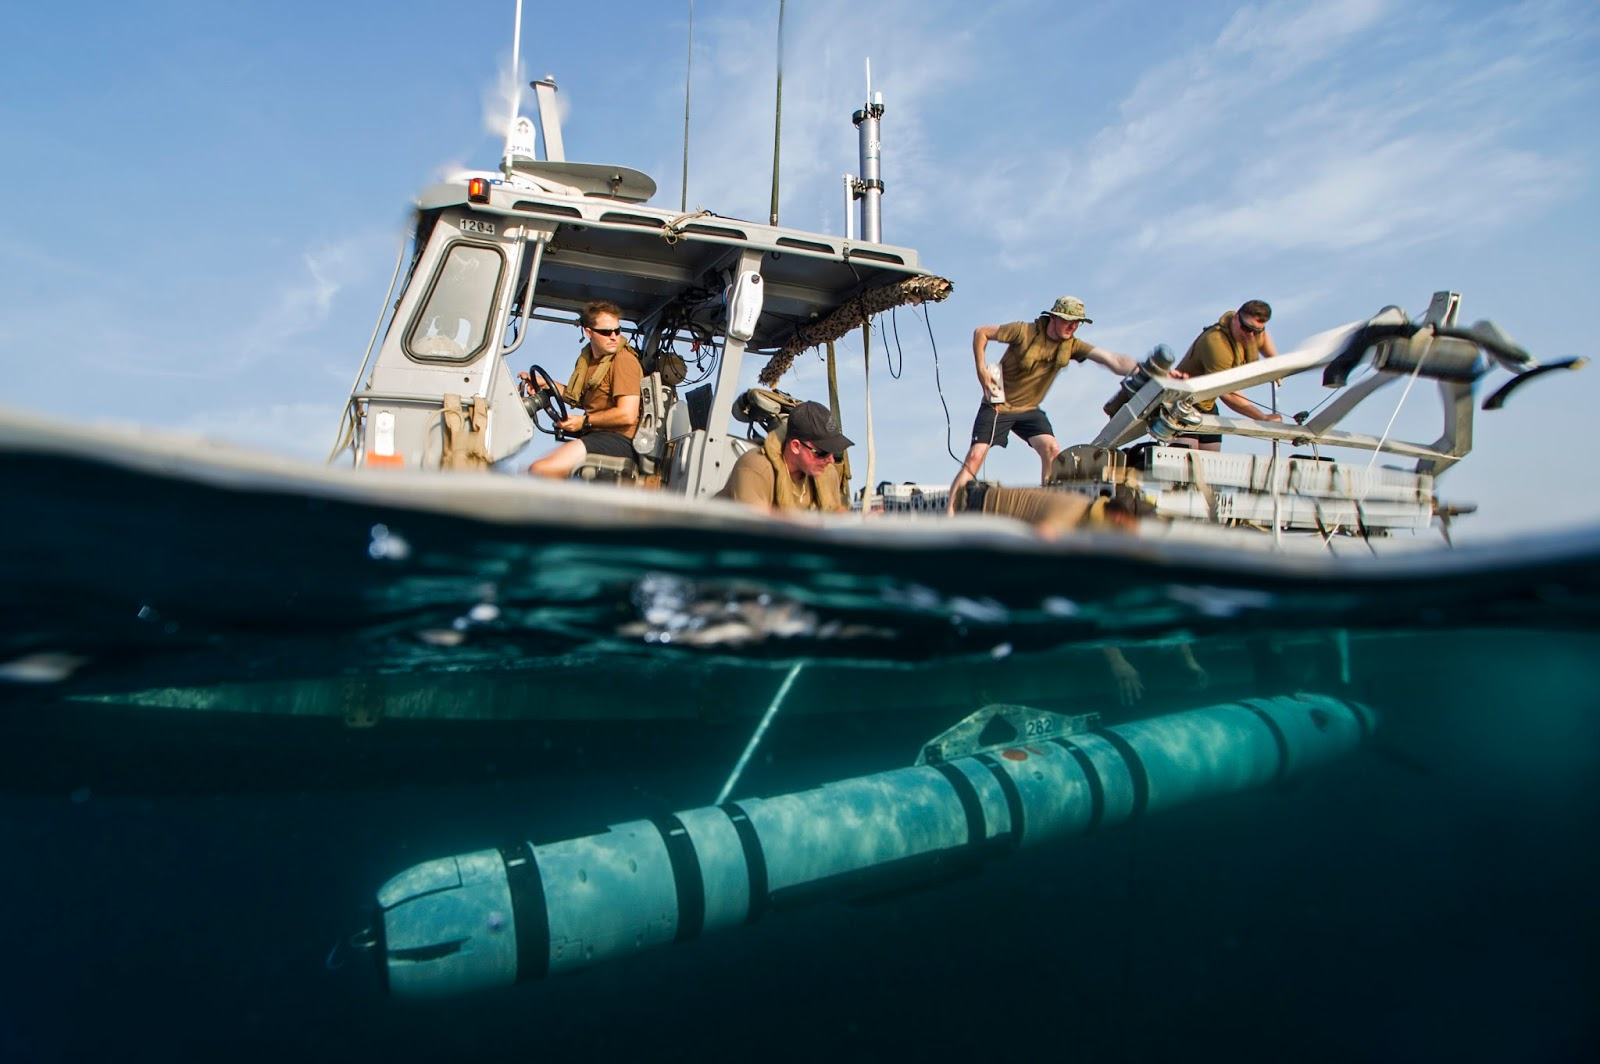 United States Navy formed the first squadron of submarine robots